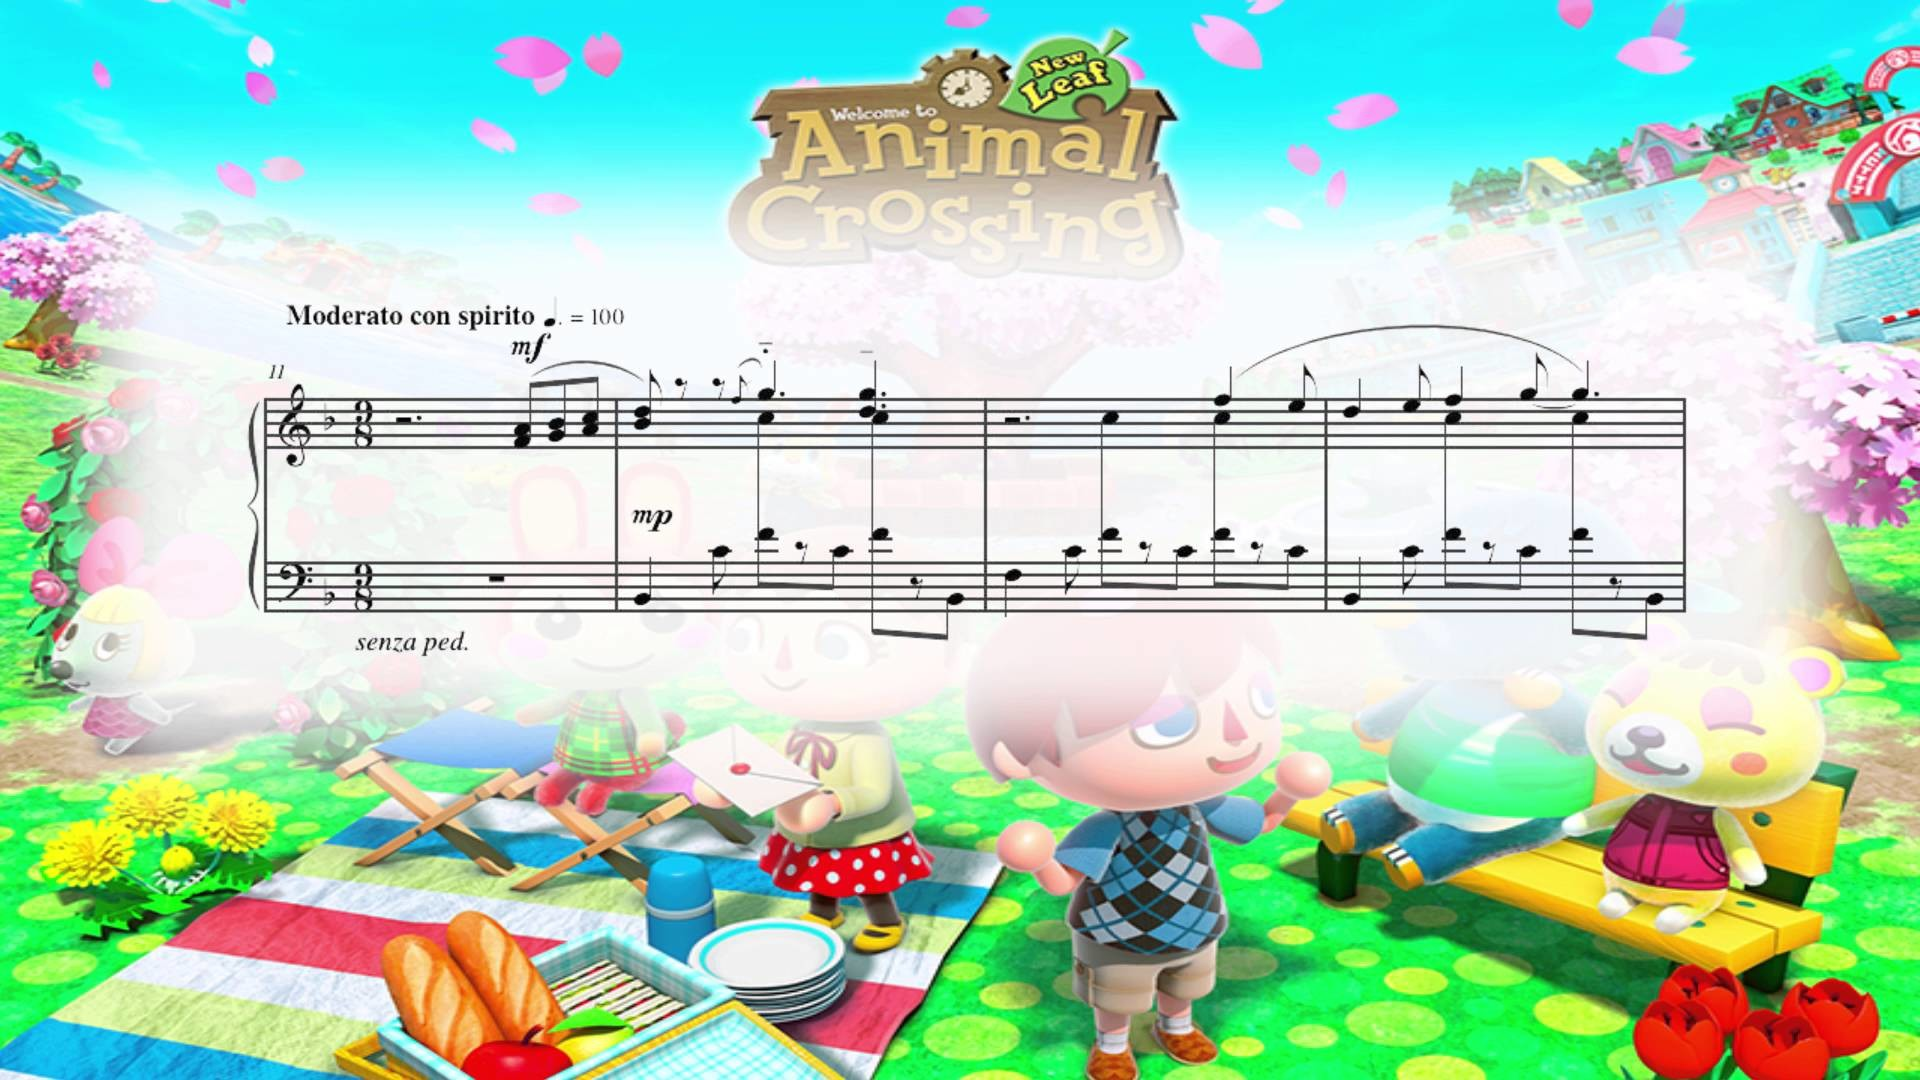 Res: 1920x1080, Animal Crossing: New Leaf - Main Theme (Piano Sheet Music)